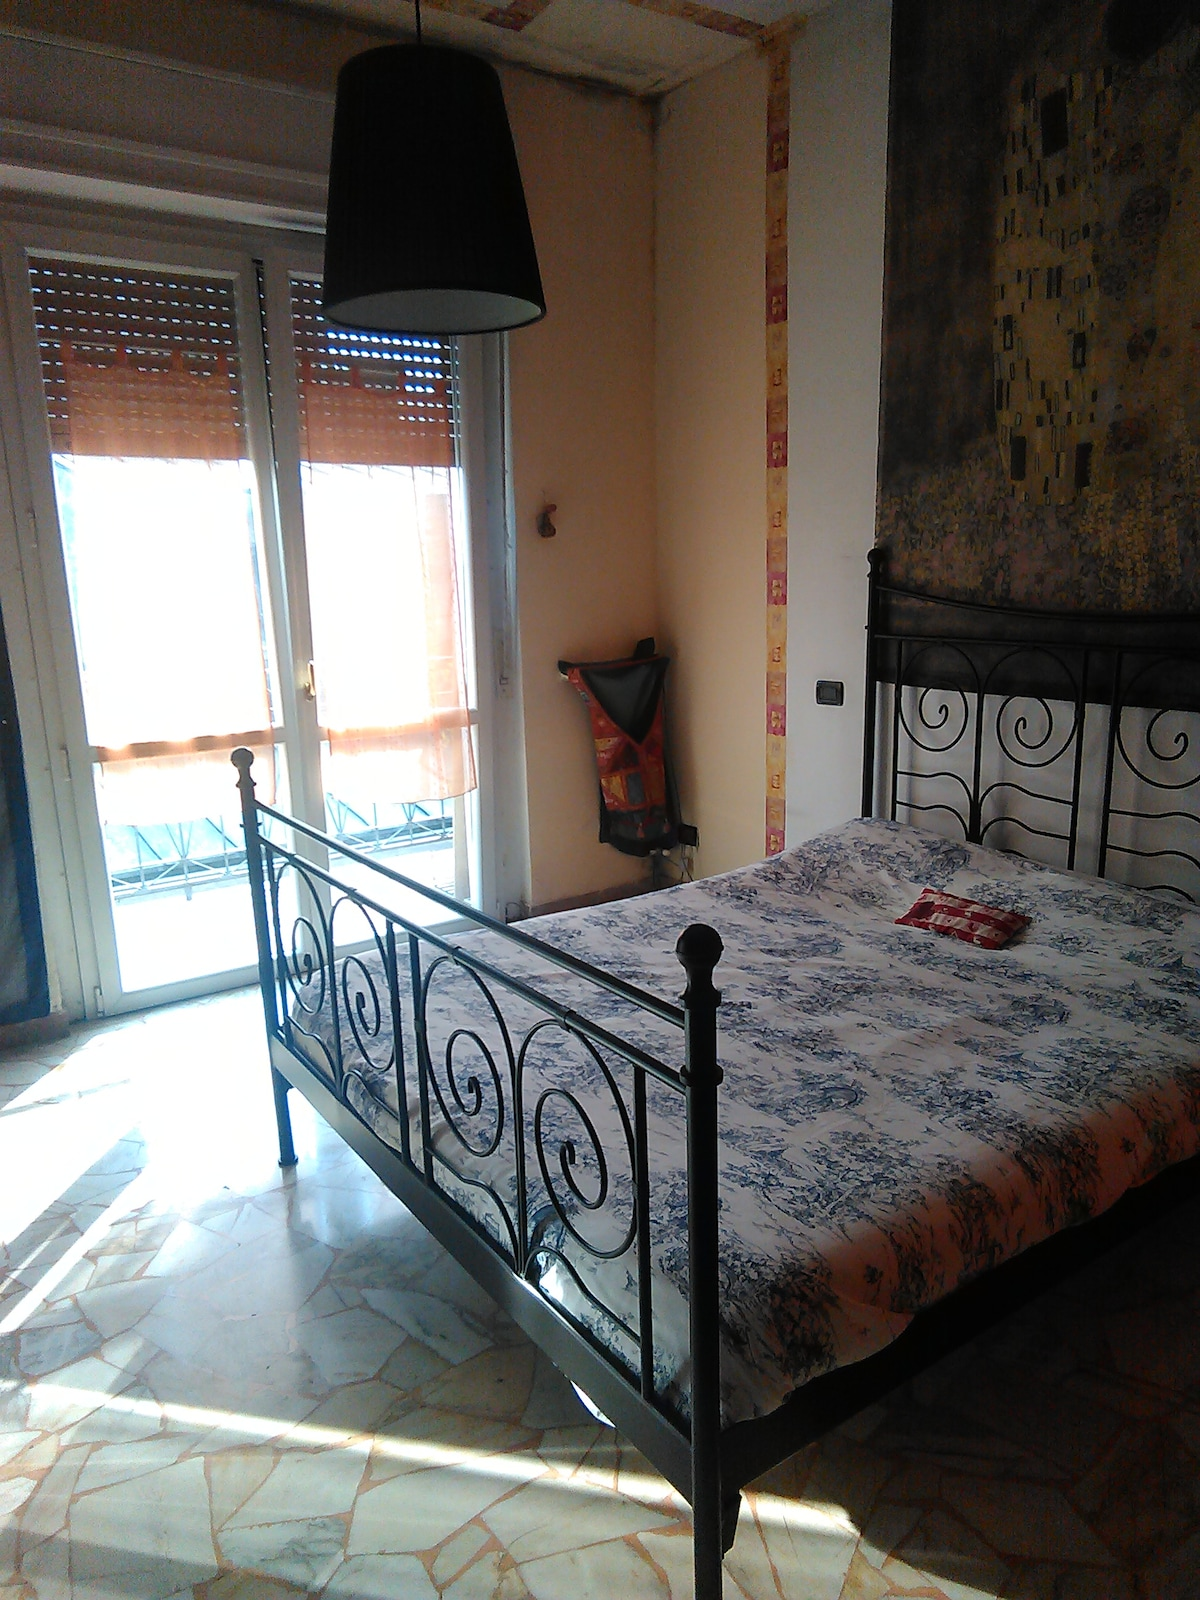 Bed room in S.Donato.Mil (Milano)